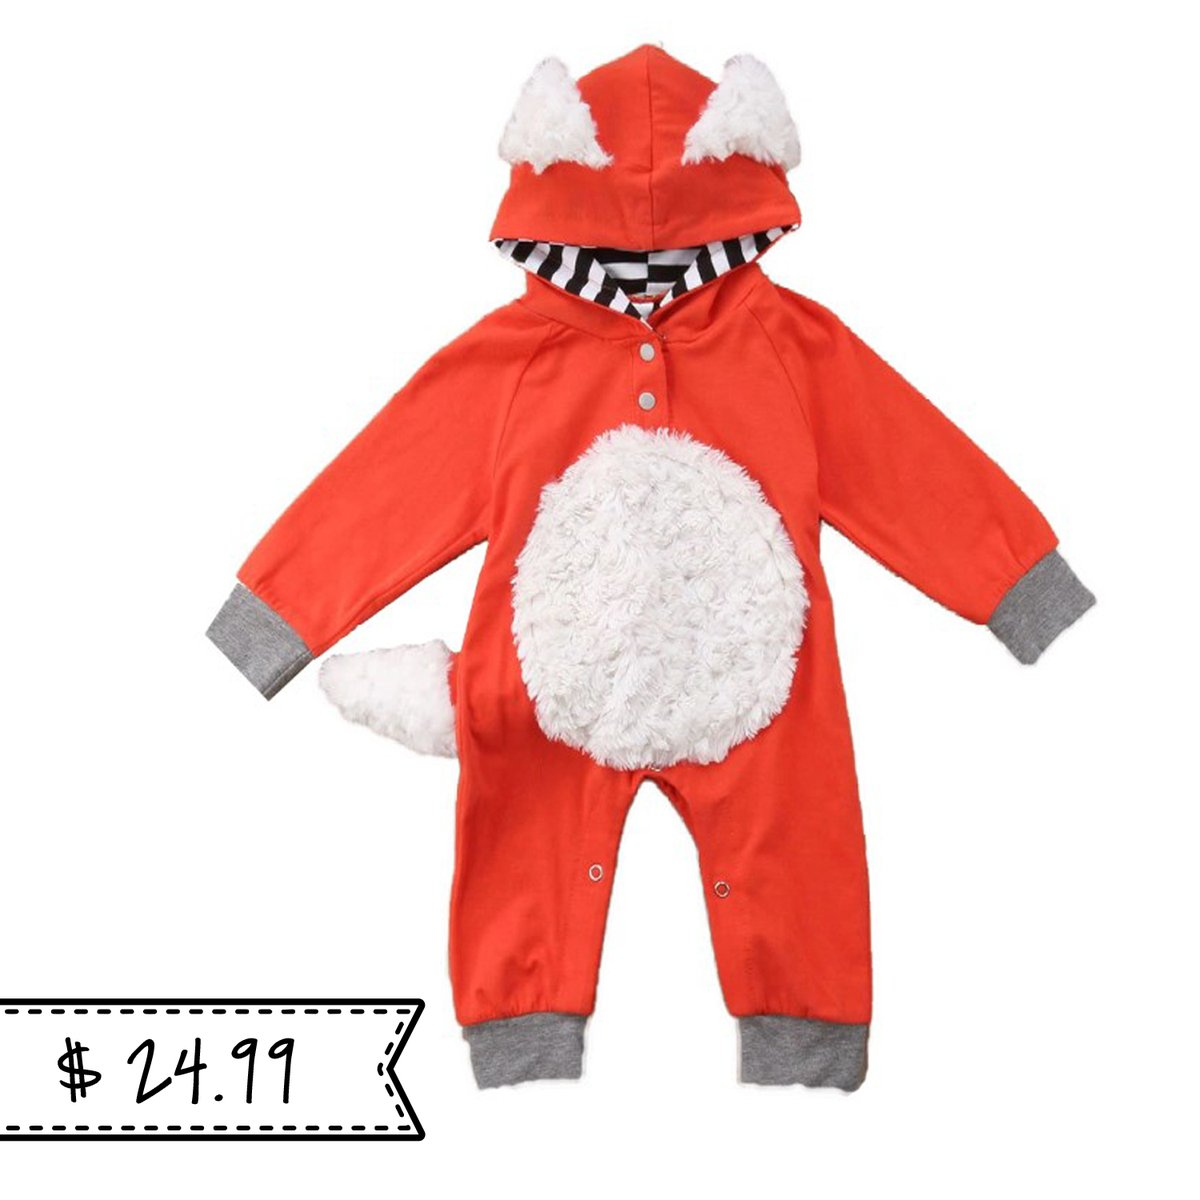 Fox Romper  starting at $24.99 Shop Now https://shortlink.store/ba9qQ-1Kq  #petitebello19 #babystyleguide #babystyle #trendybabygirl #babyboy #babyboyclothes #babyboyfashion #trendybaby #trendybabyclothes #babyfashion #babygirlfashion #childrenfashion #childrenstyle #kidsfashionpic.twitter.com/pQ3qKbD9DB